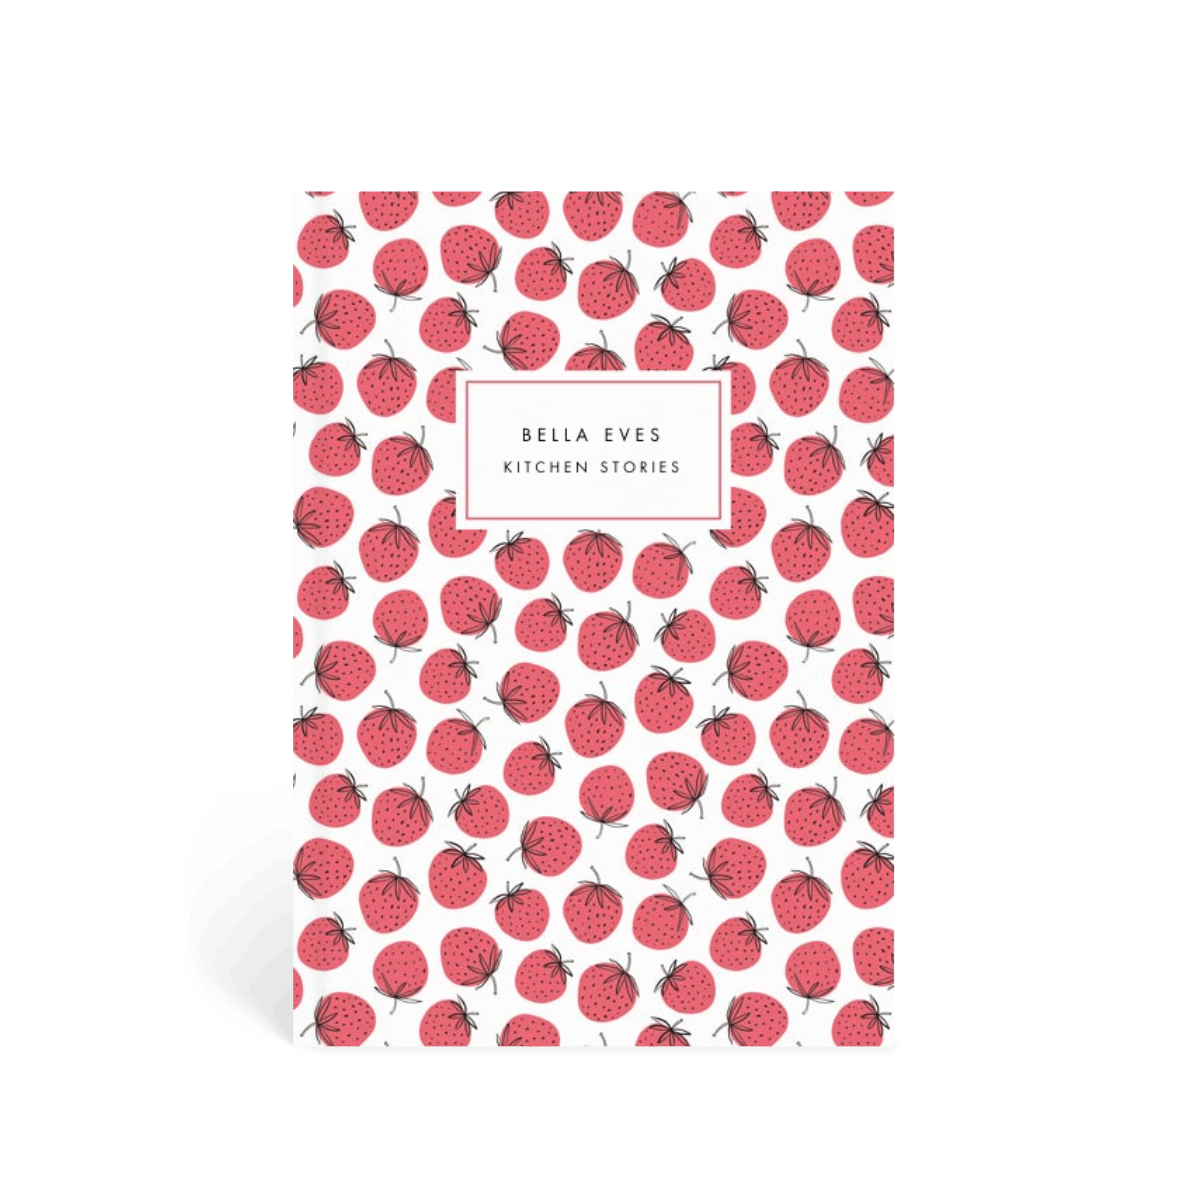 Https%3a%2f%2fwww.papier.com%2fproduct image%2f47607%2f25%2fstrawberries 11686 front 1556892726.png?ixlib=rb 1.1